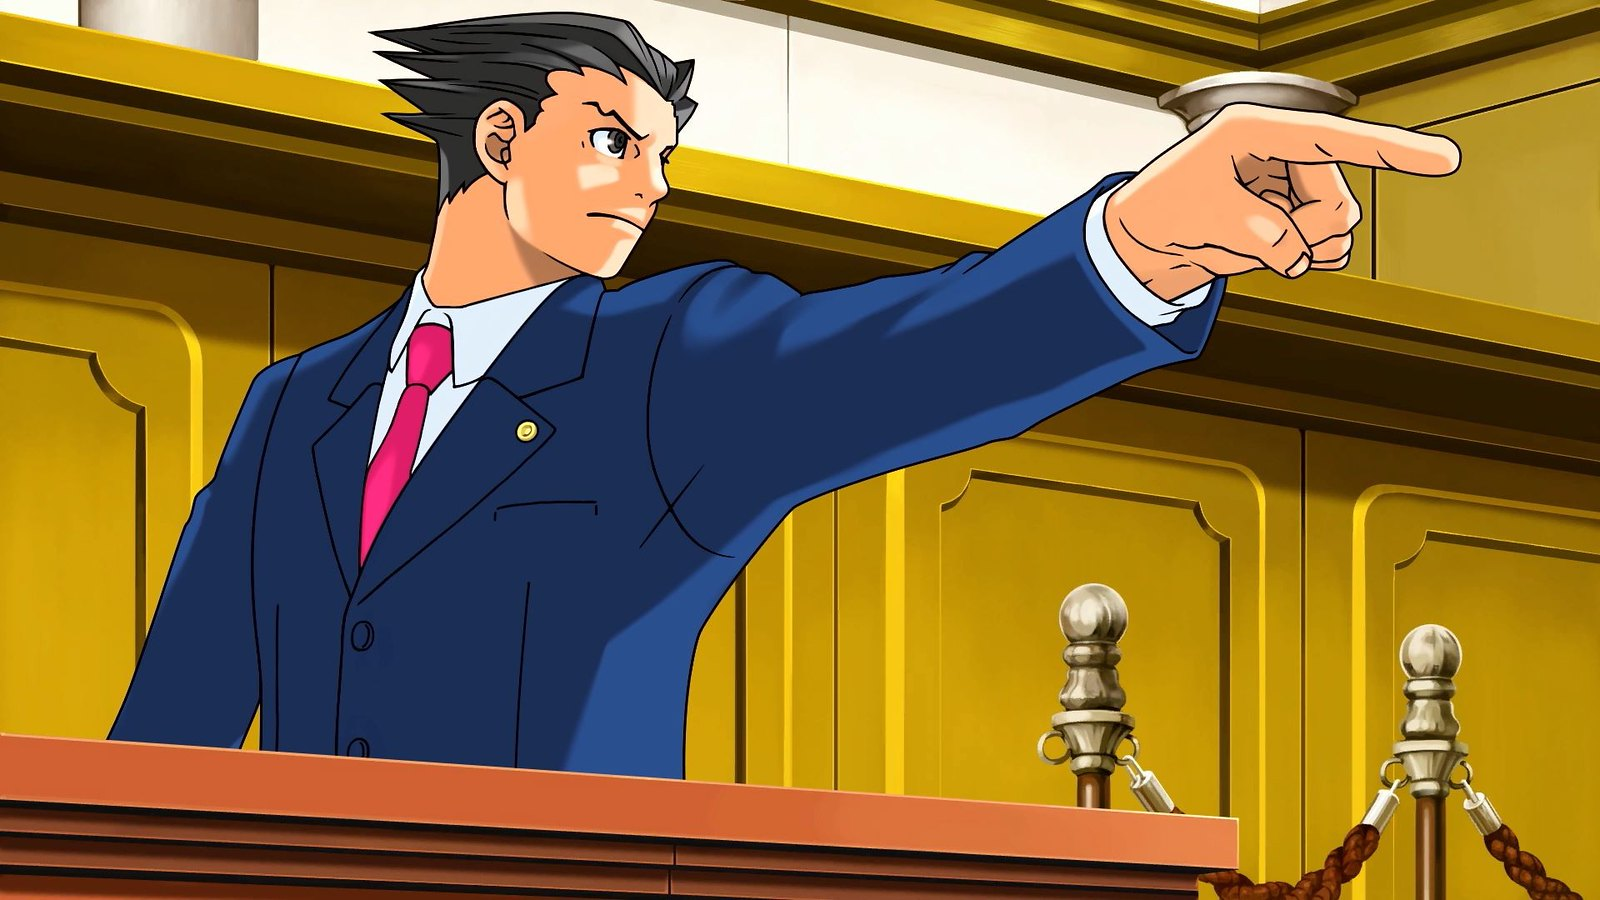 Phoenix Wright: Ace Attorney Trilogy Review: Please the court - The AU  Review